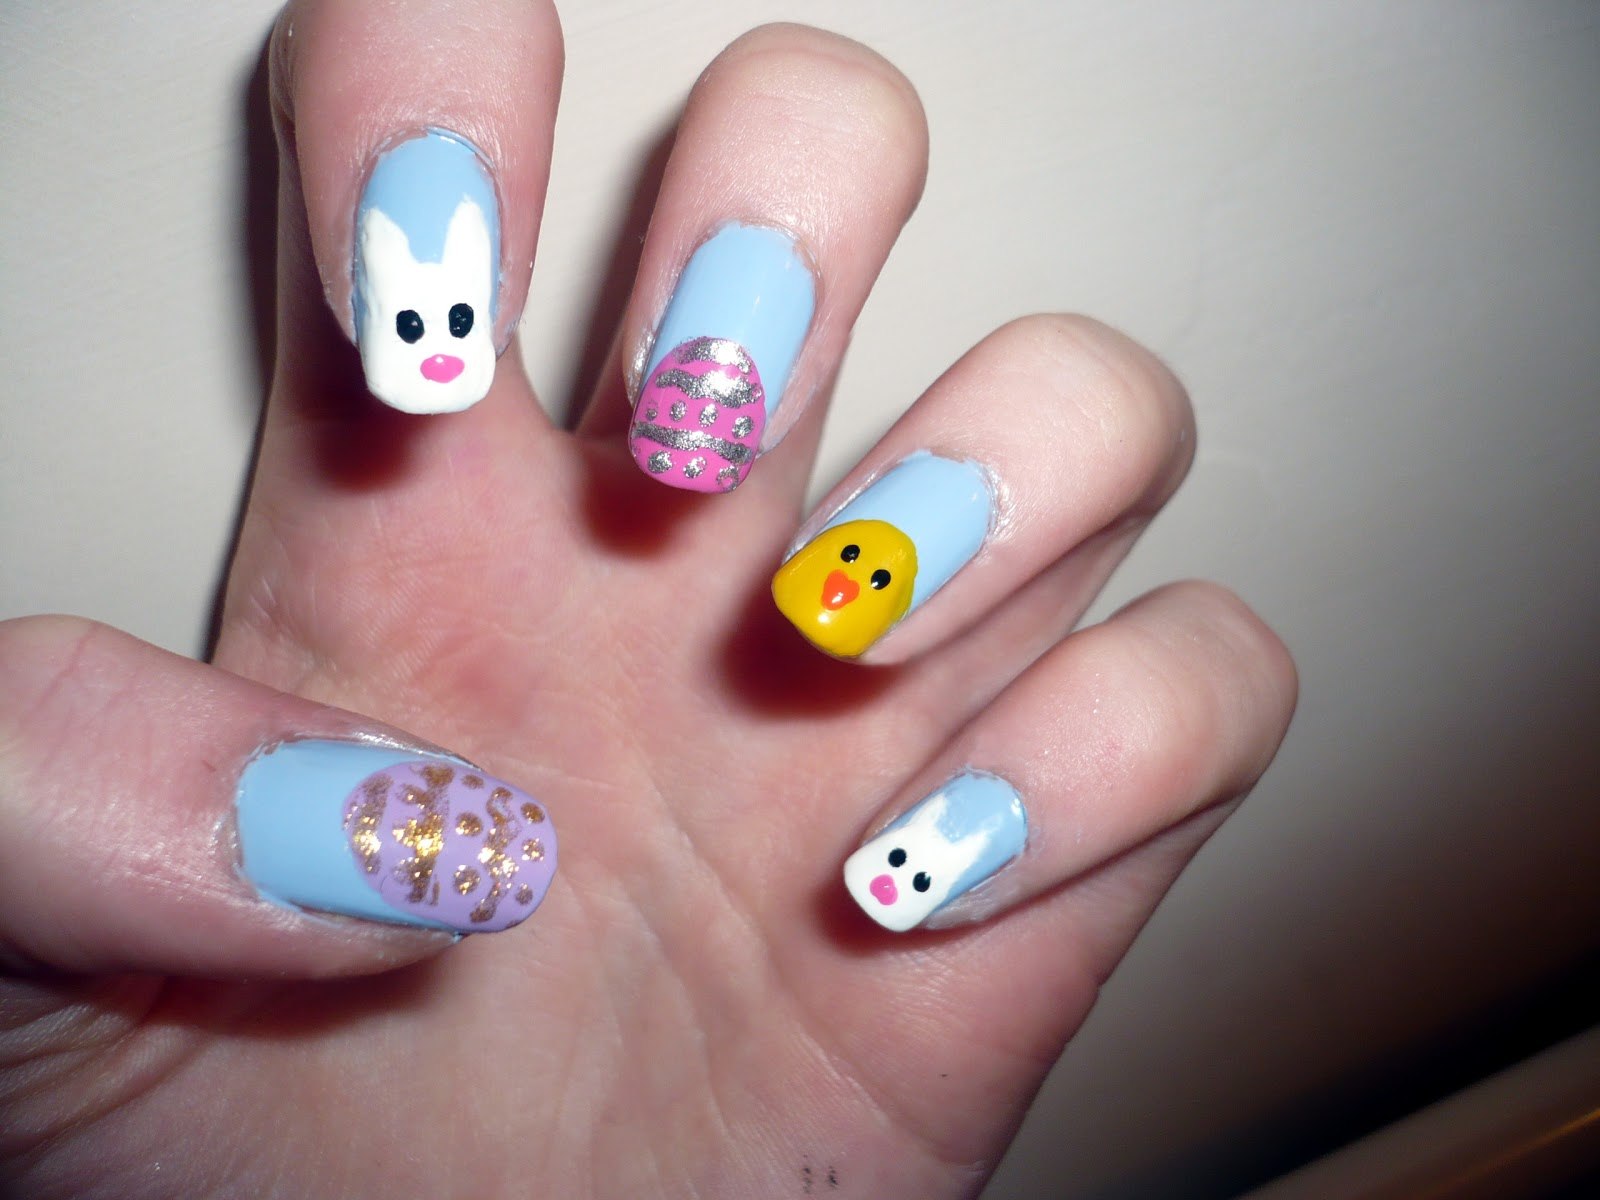 ... Louise Fashion | a fashion, style and beauty blog: Easter nail art